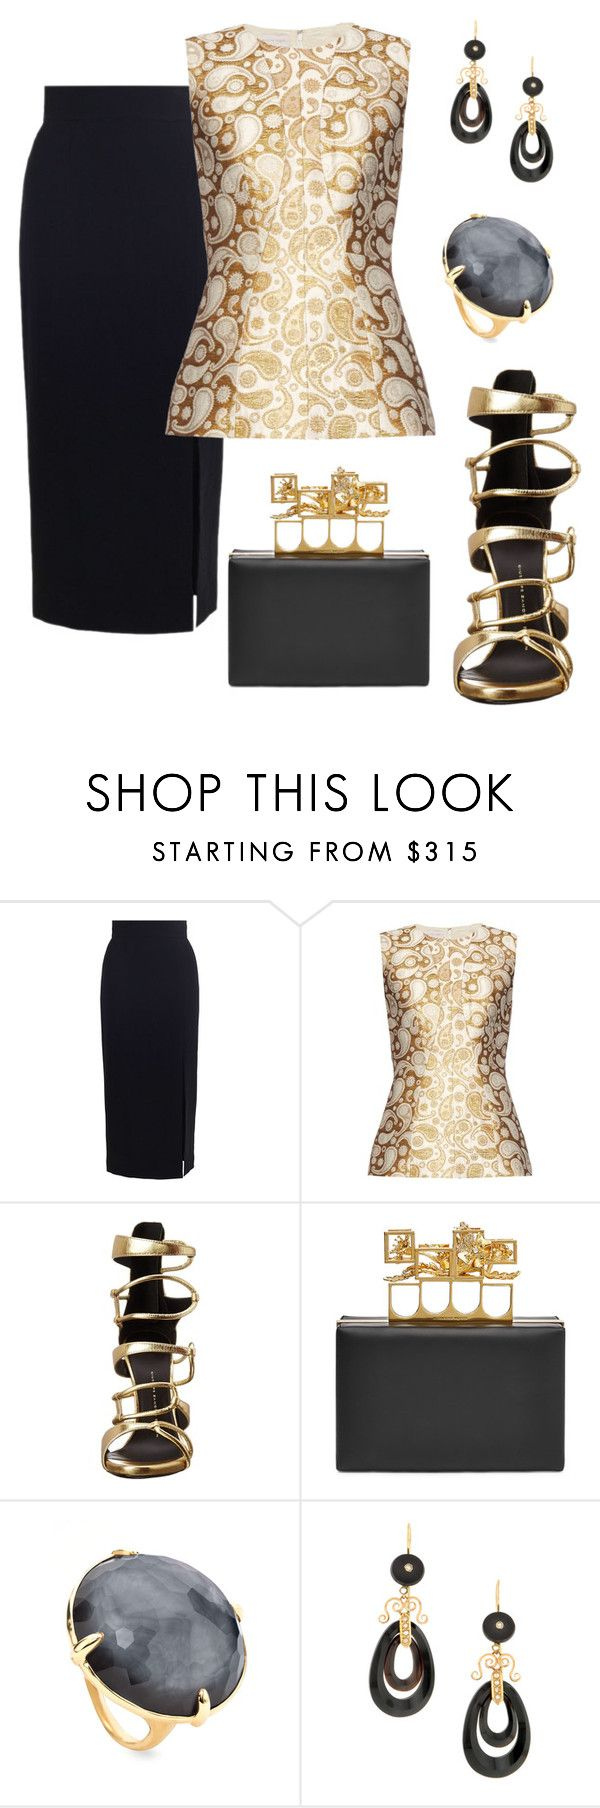 """You got me."" by schenonek ❤ liked on Polyvore featuring Zimmermann, STELLA McCARTNEY, Giuseppe Zanotti, Alexander McQueen and Ippolita"